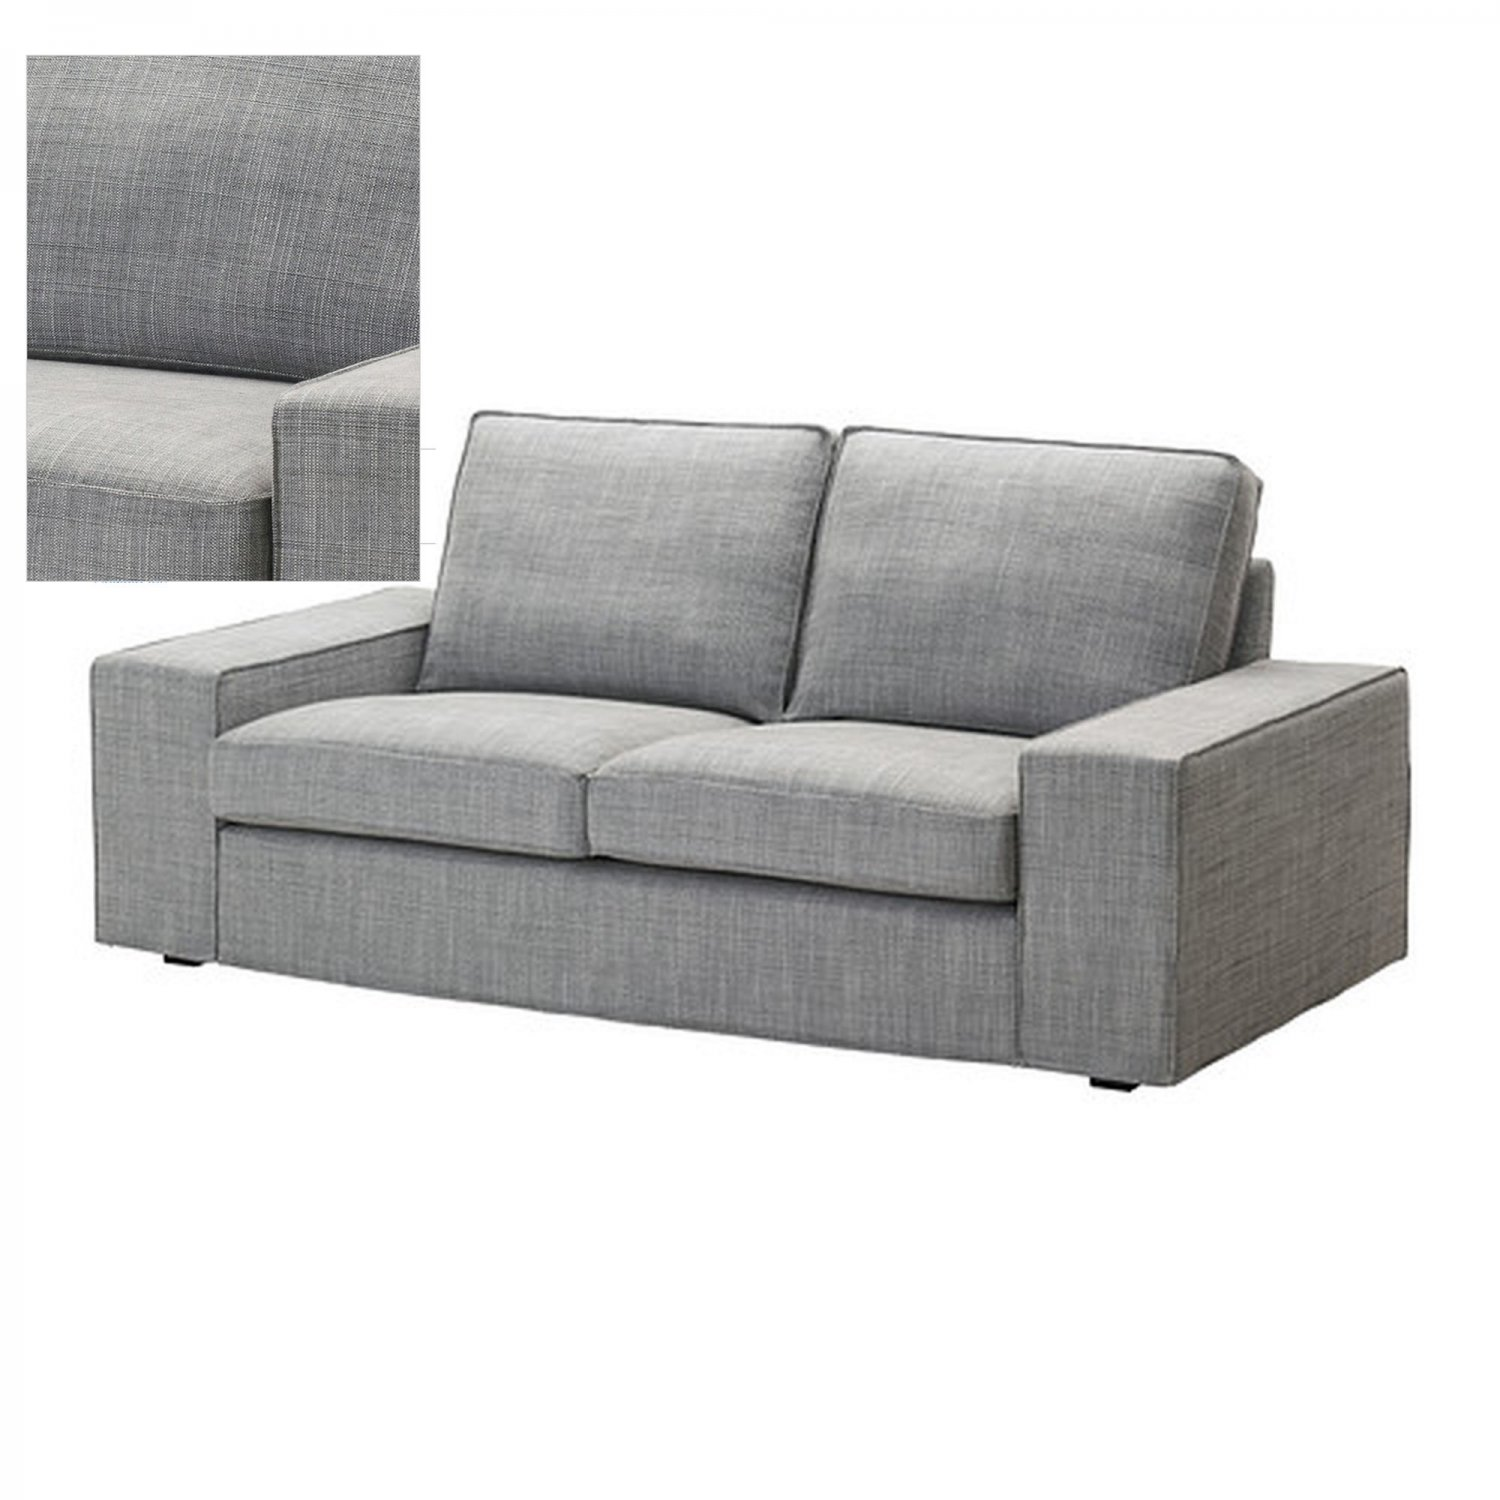 IKEA KIVIK 2 Seat Loveseat Sofa SLIPCOVER Cover ISUNDA GRAY Grey Bezug